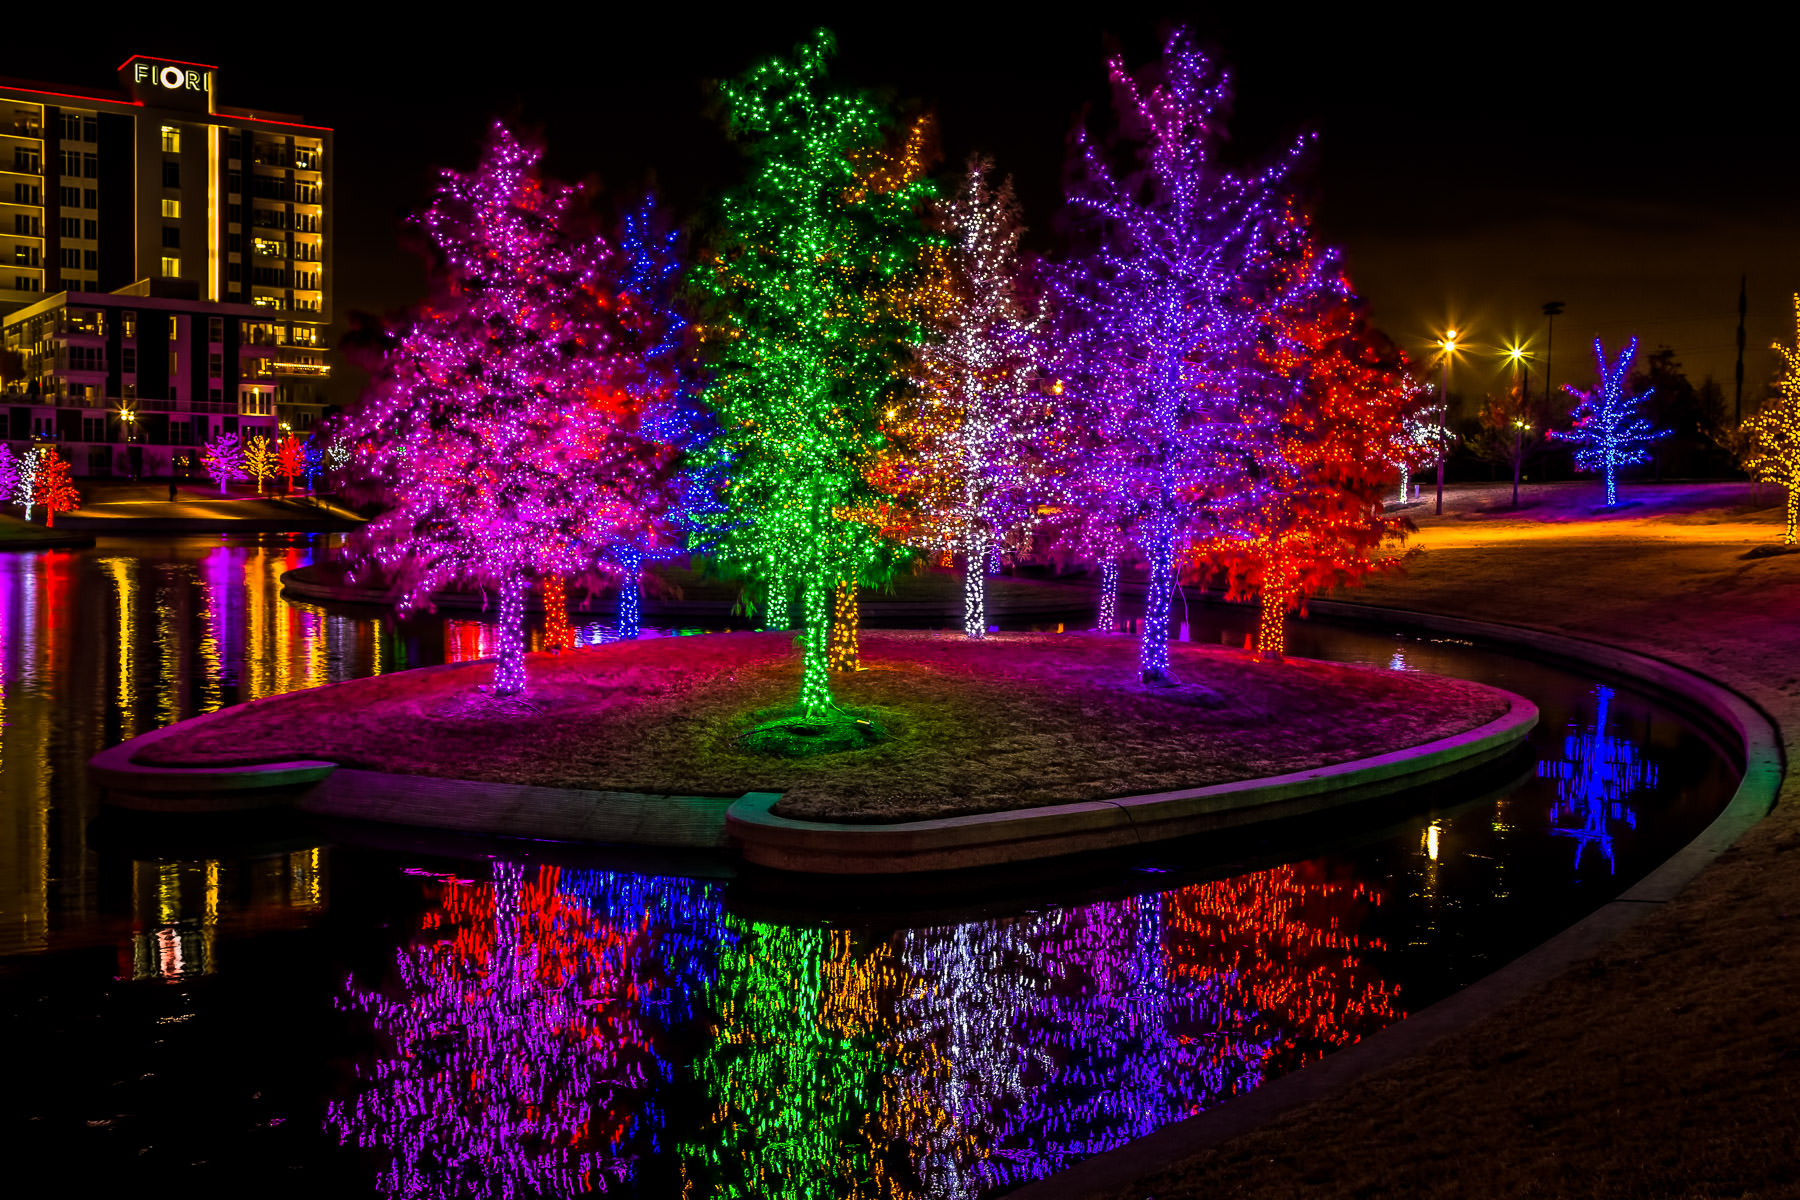 Trees in Addison, Texas' Vitruvian Park decorated with multi-colored lights for the holidays.